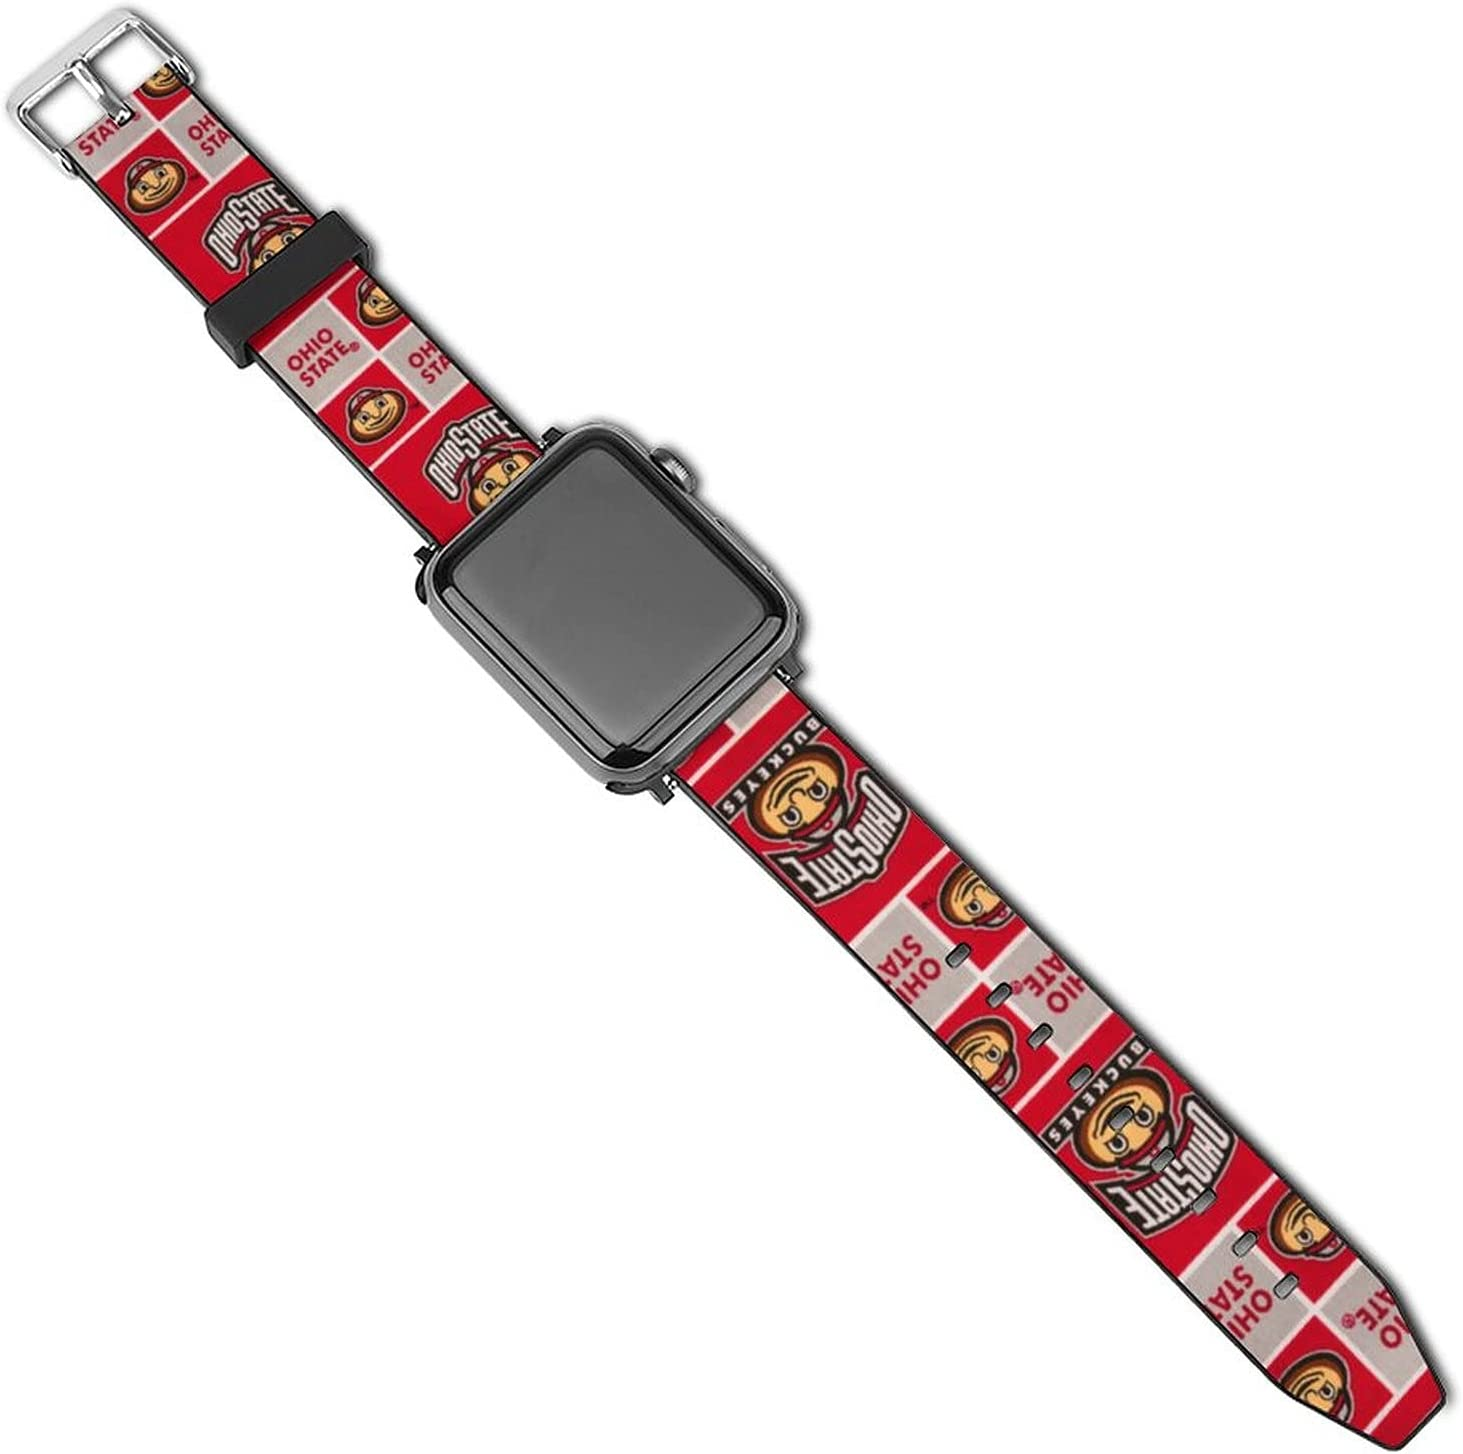 Leather Apple Watch Band O-HIO State Buckeyes Silicone Compatible with iWatch Series 5 4 3 2 1 Cartoon Design Strap 38mm/40mm